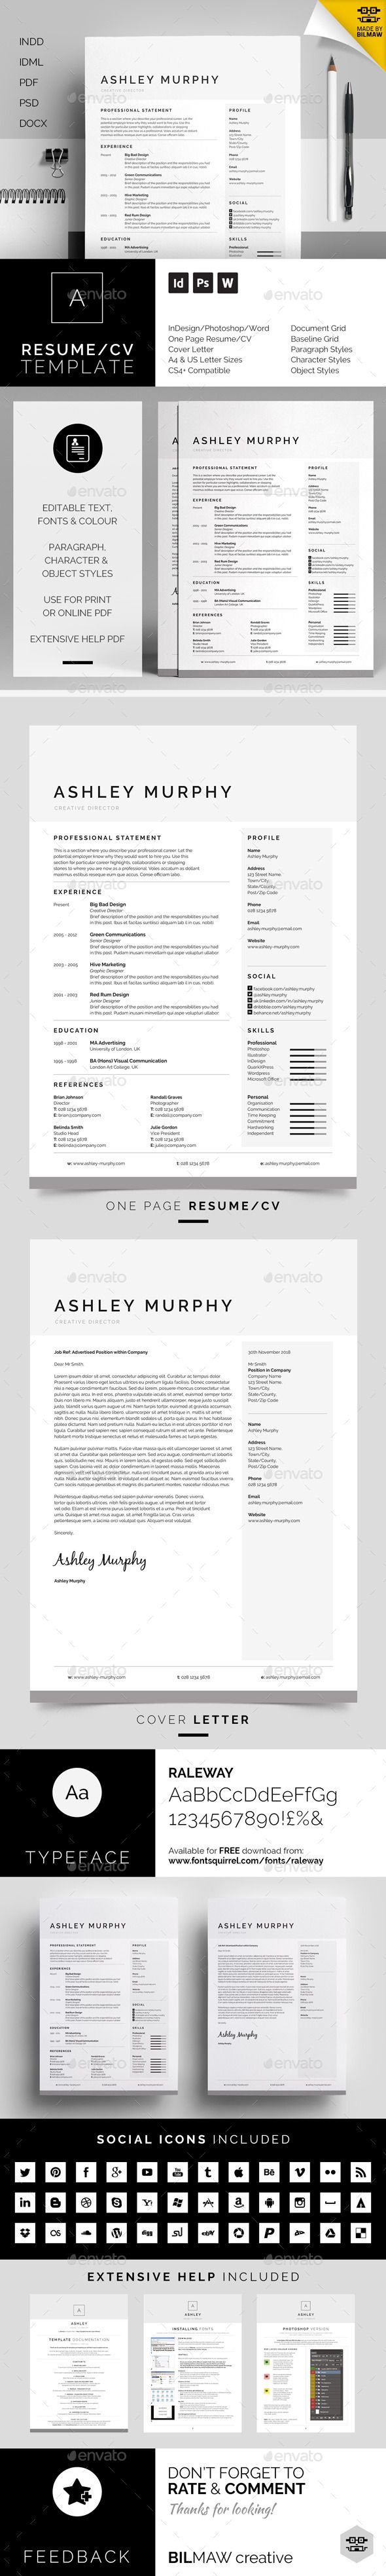 excellent resume formats%0A good example of cover letter